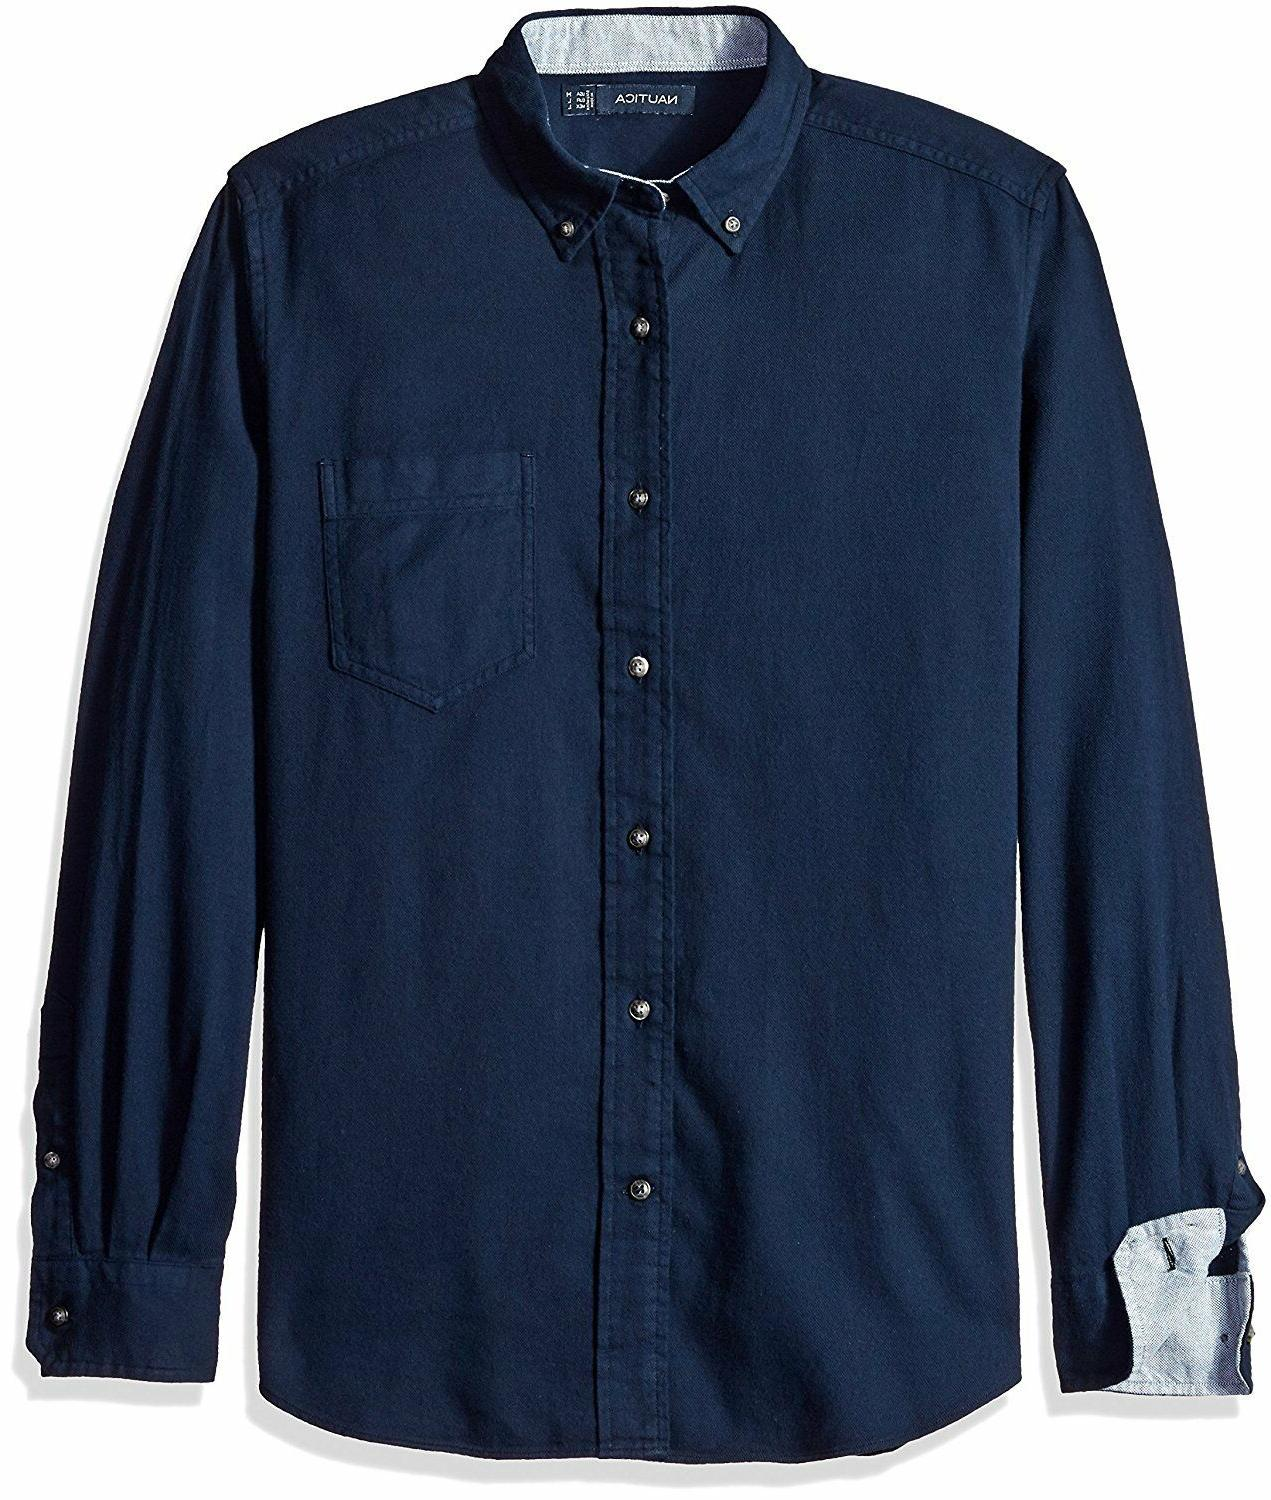 new men s classic fit navy solid